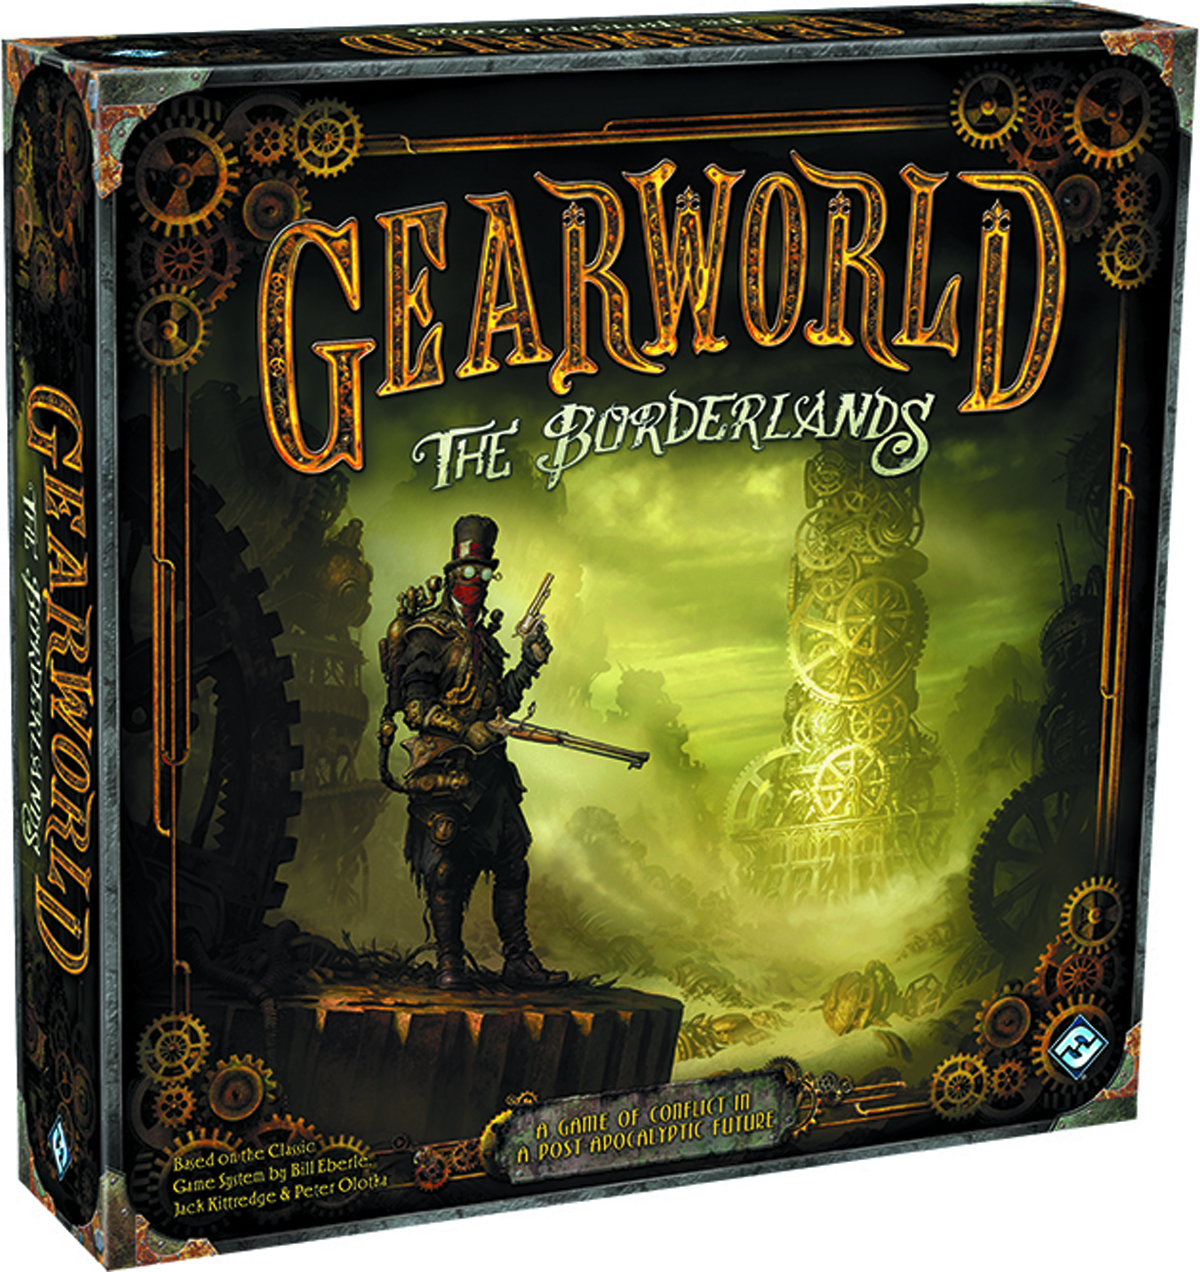 GEARWORLD THE BORDERLANDS BOARD GAME